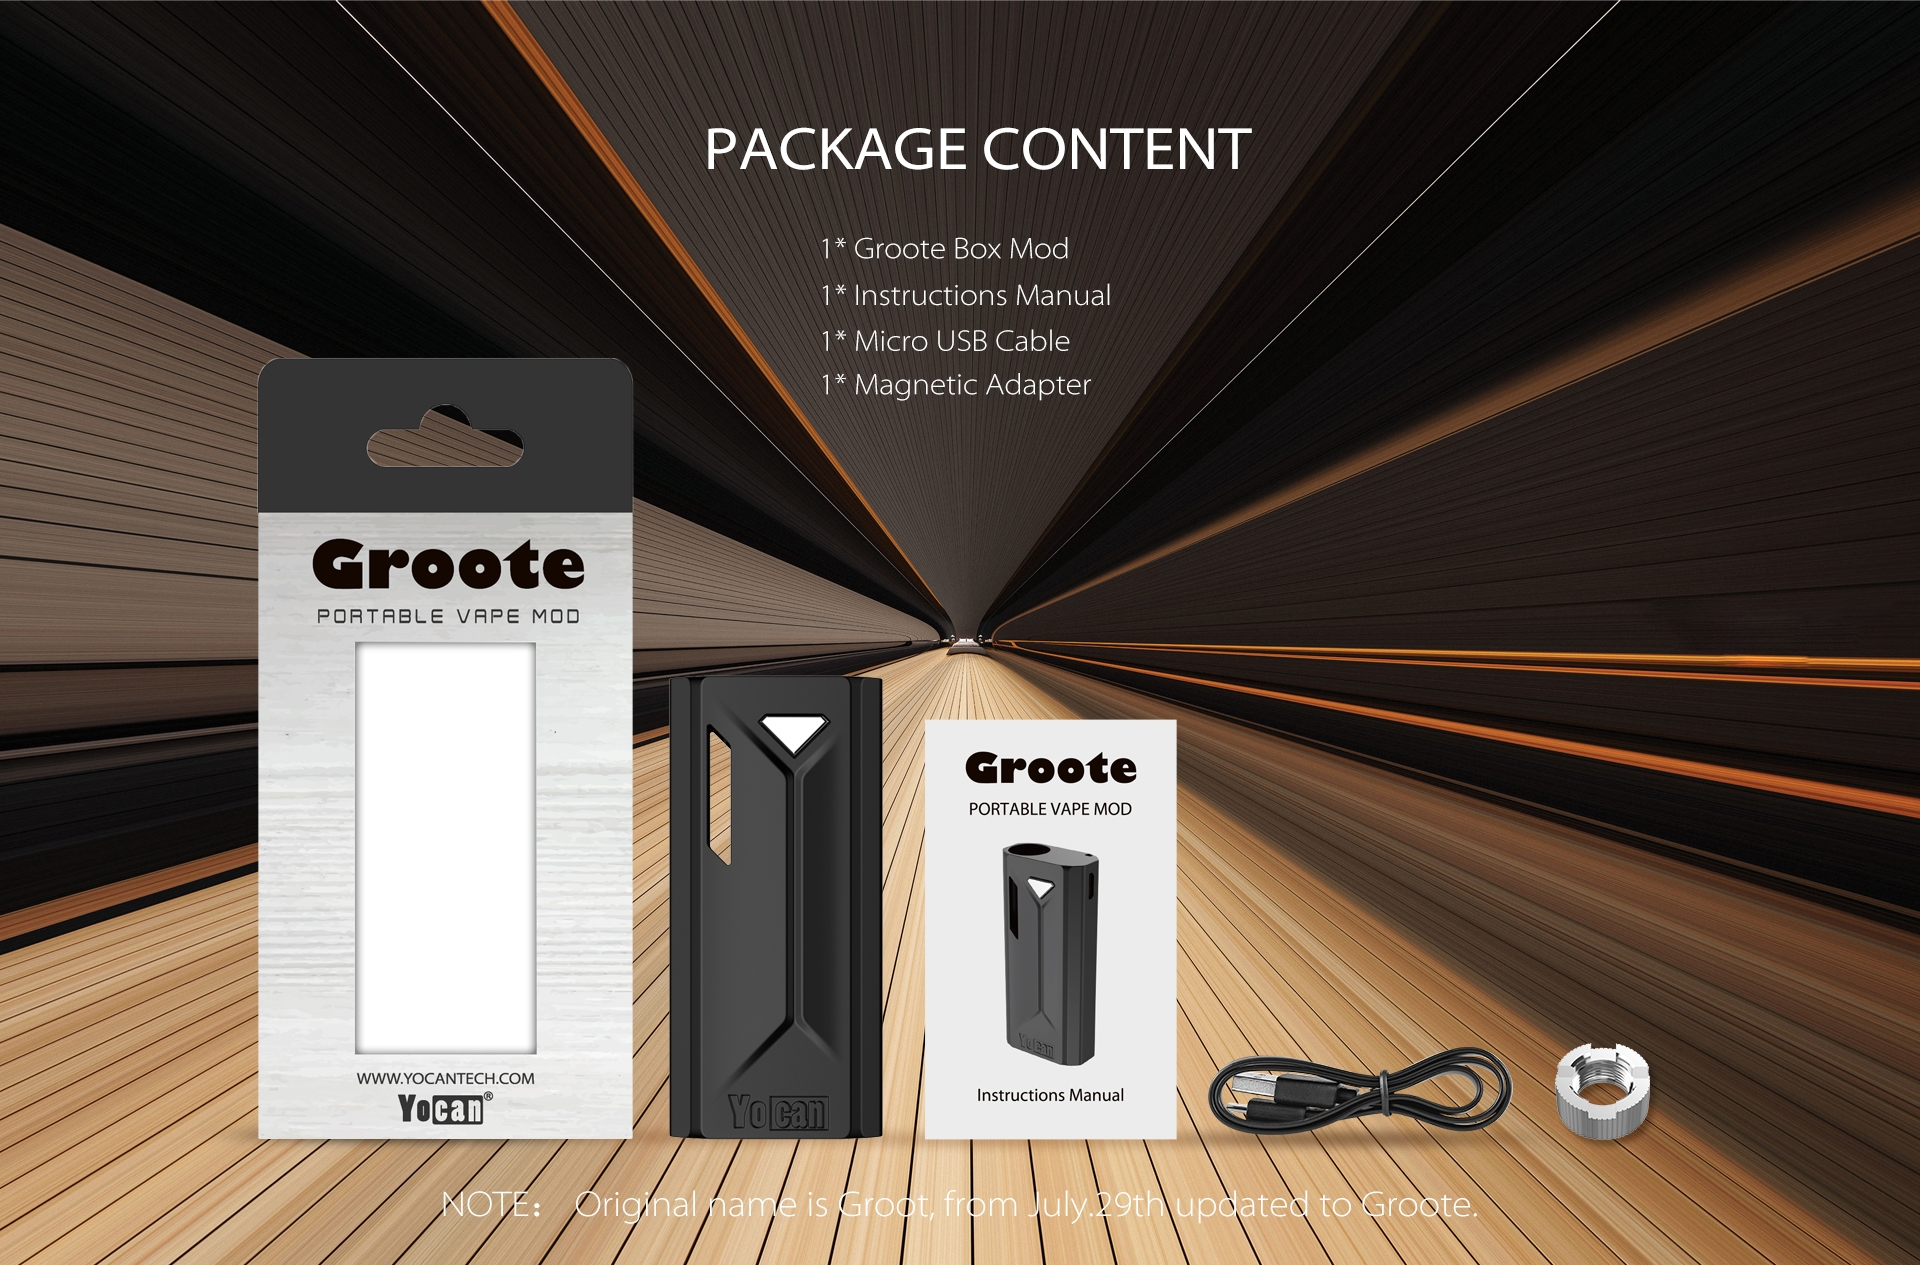 The Yocan Groote box mod battery package content.